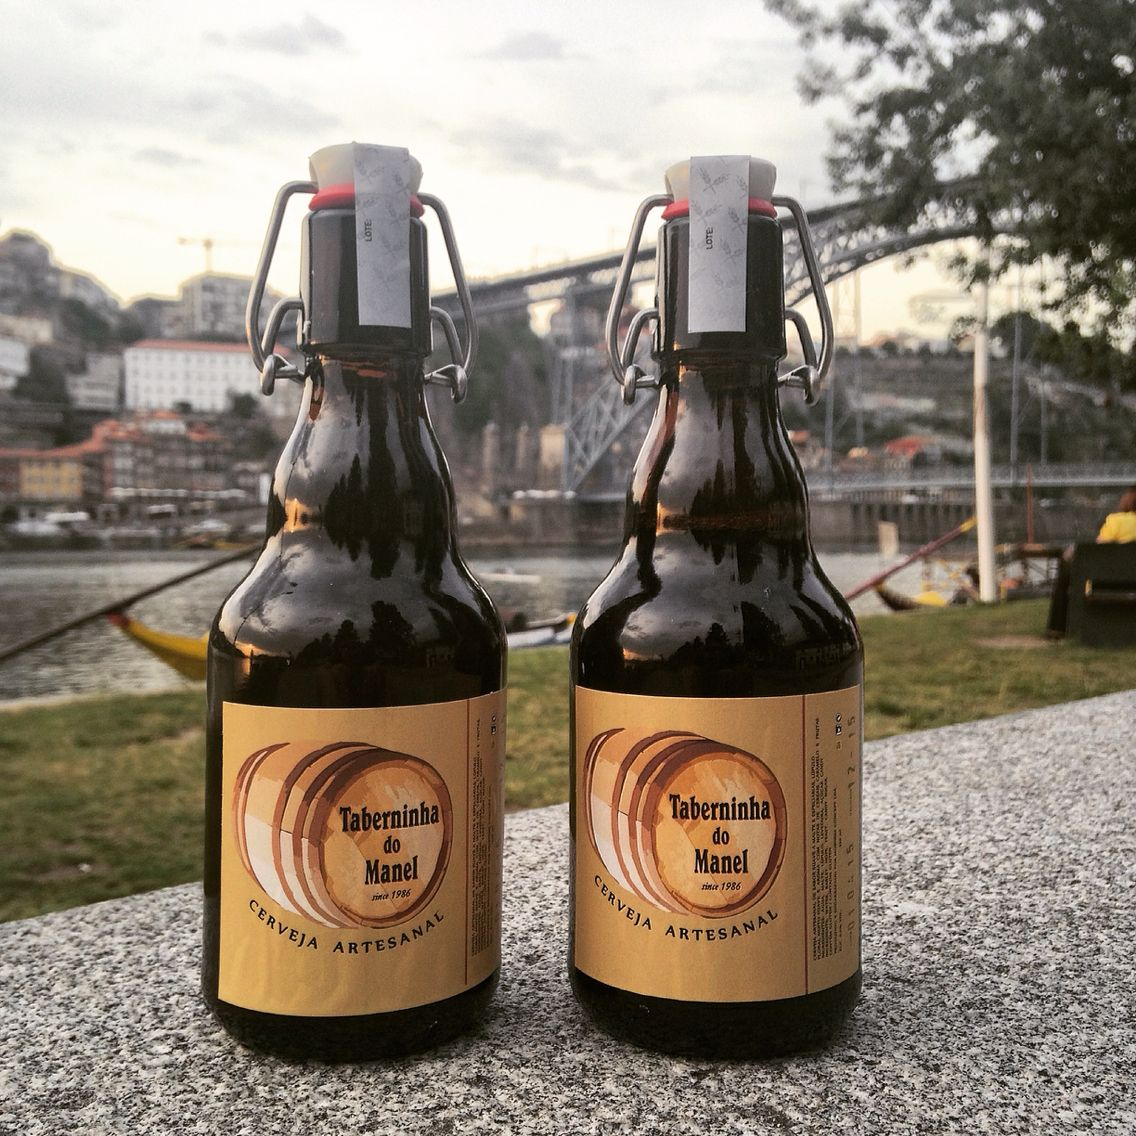 Our own artisanal beer!!